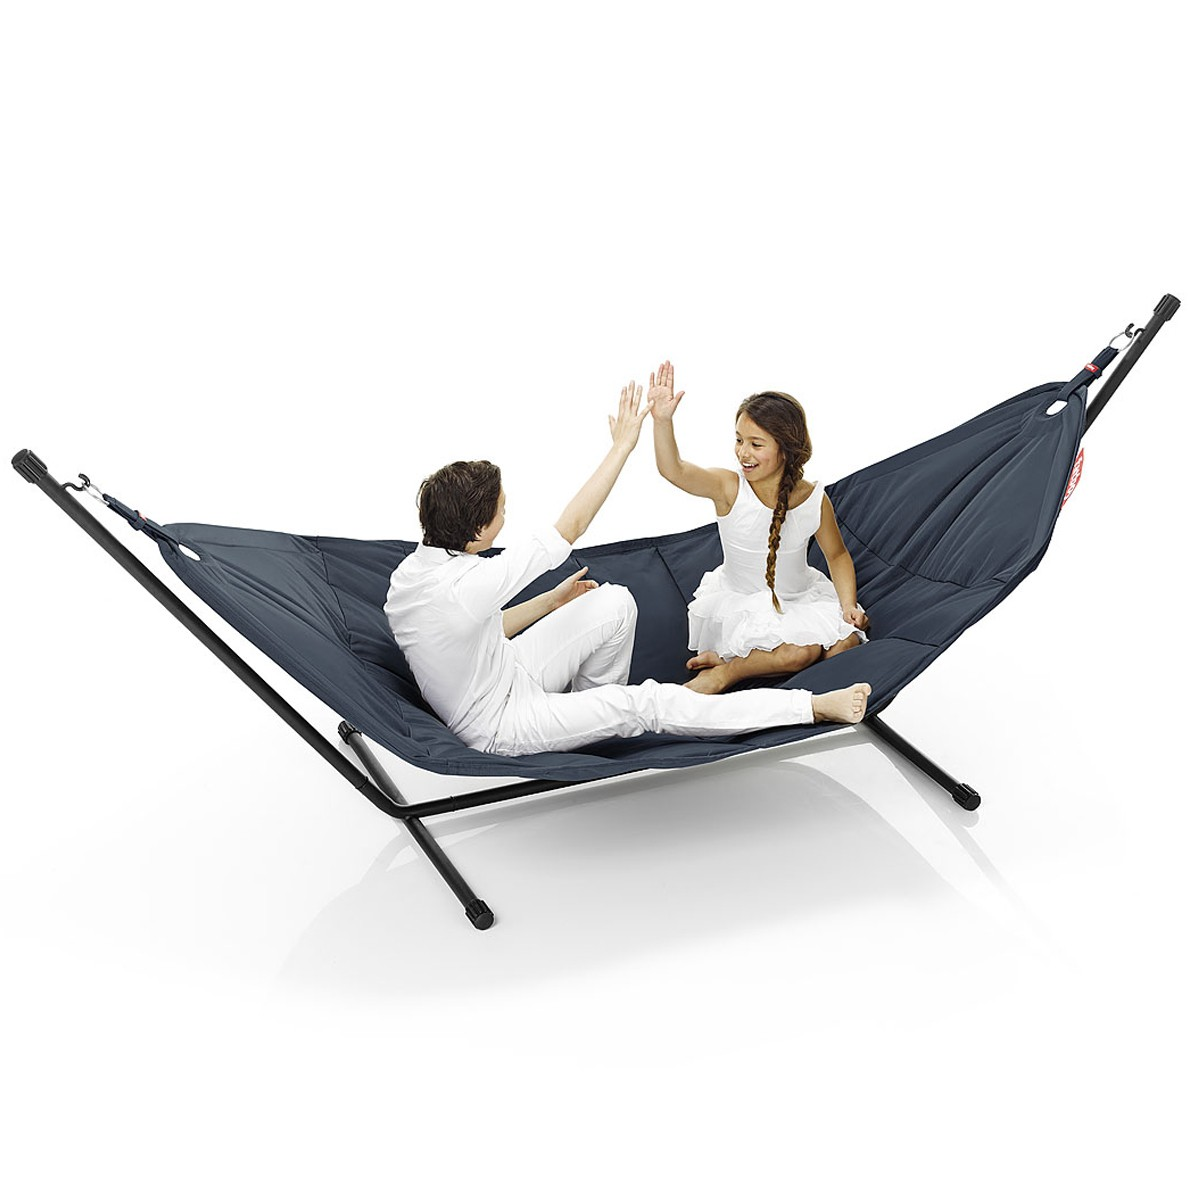 fatboy headdemock hammock  u0026 stand   free standing hammock     buy fatboy headdemock hammock  u0026 stand   free standing  rh   connectionsathome co uk